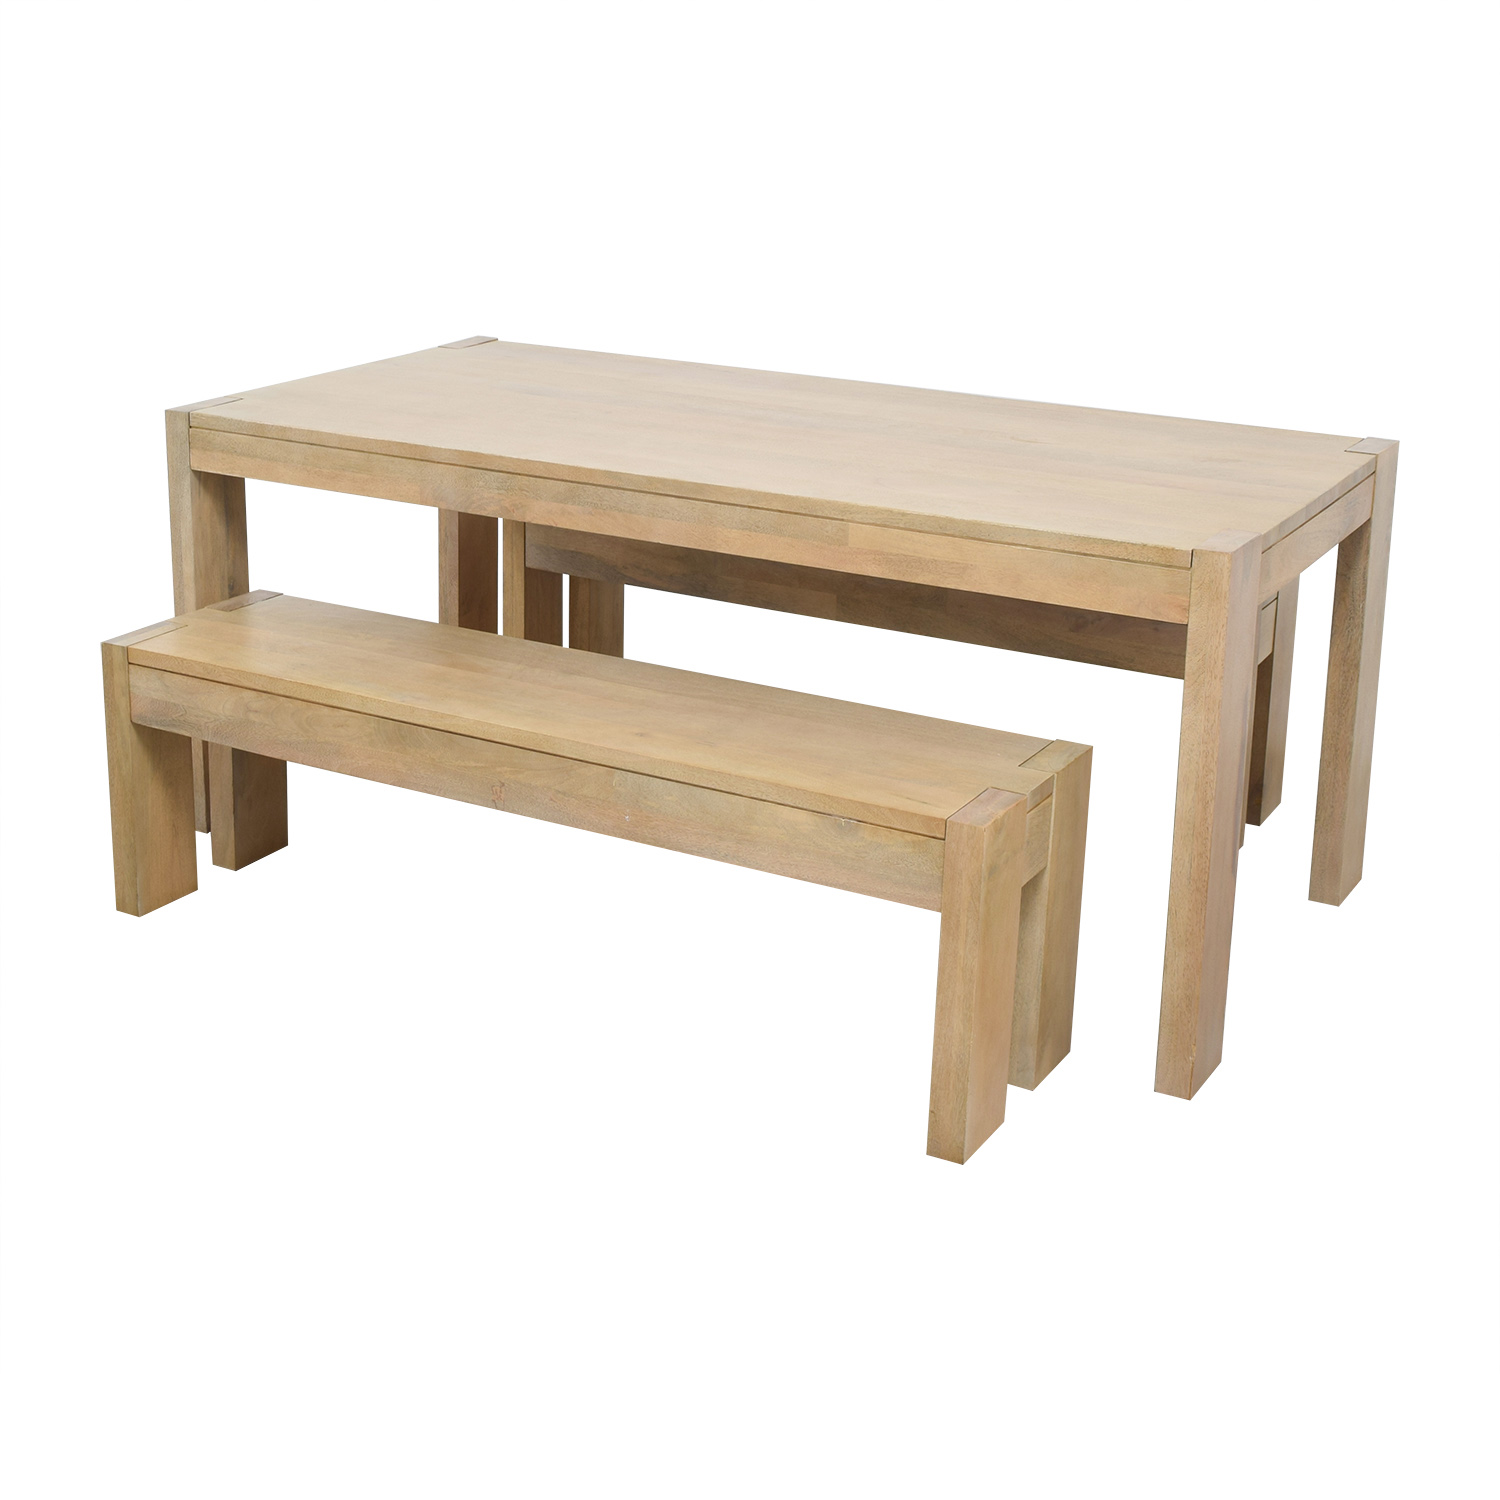 West Elm West Elm Boerum Dining Table and Benches dimensions